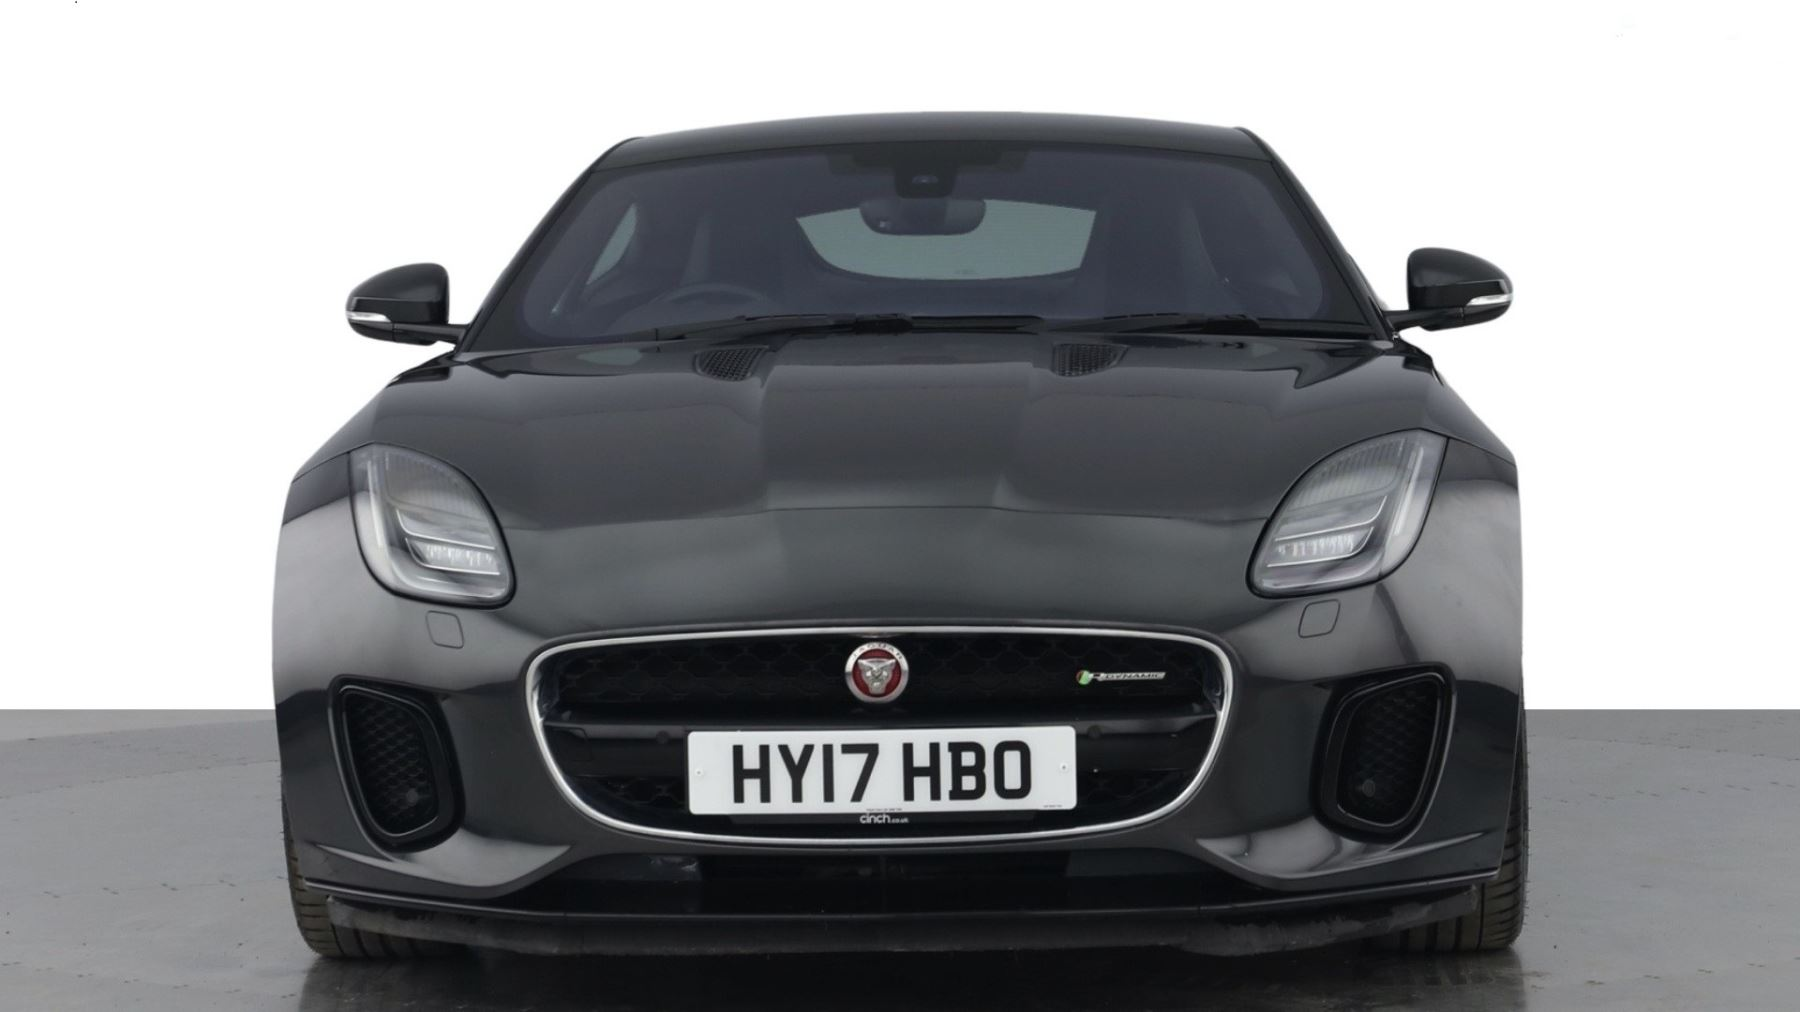 Jaguar F-TYPE 3.0 Supercharged V6 R-Dynamic with Panoramic Sunroof and Meridian Surround Sound image 7